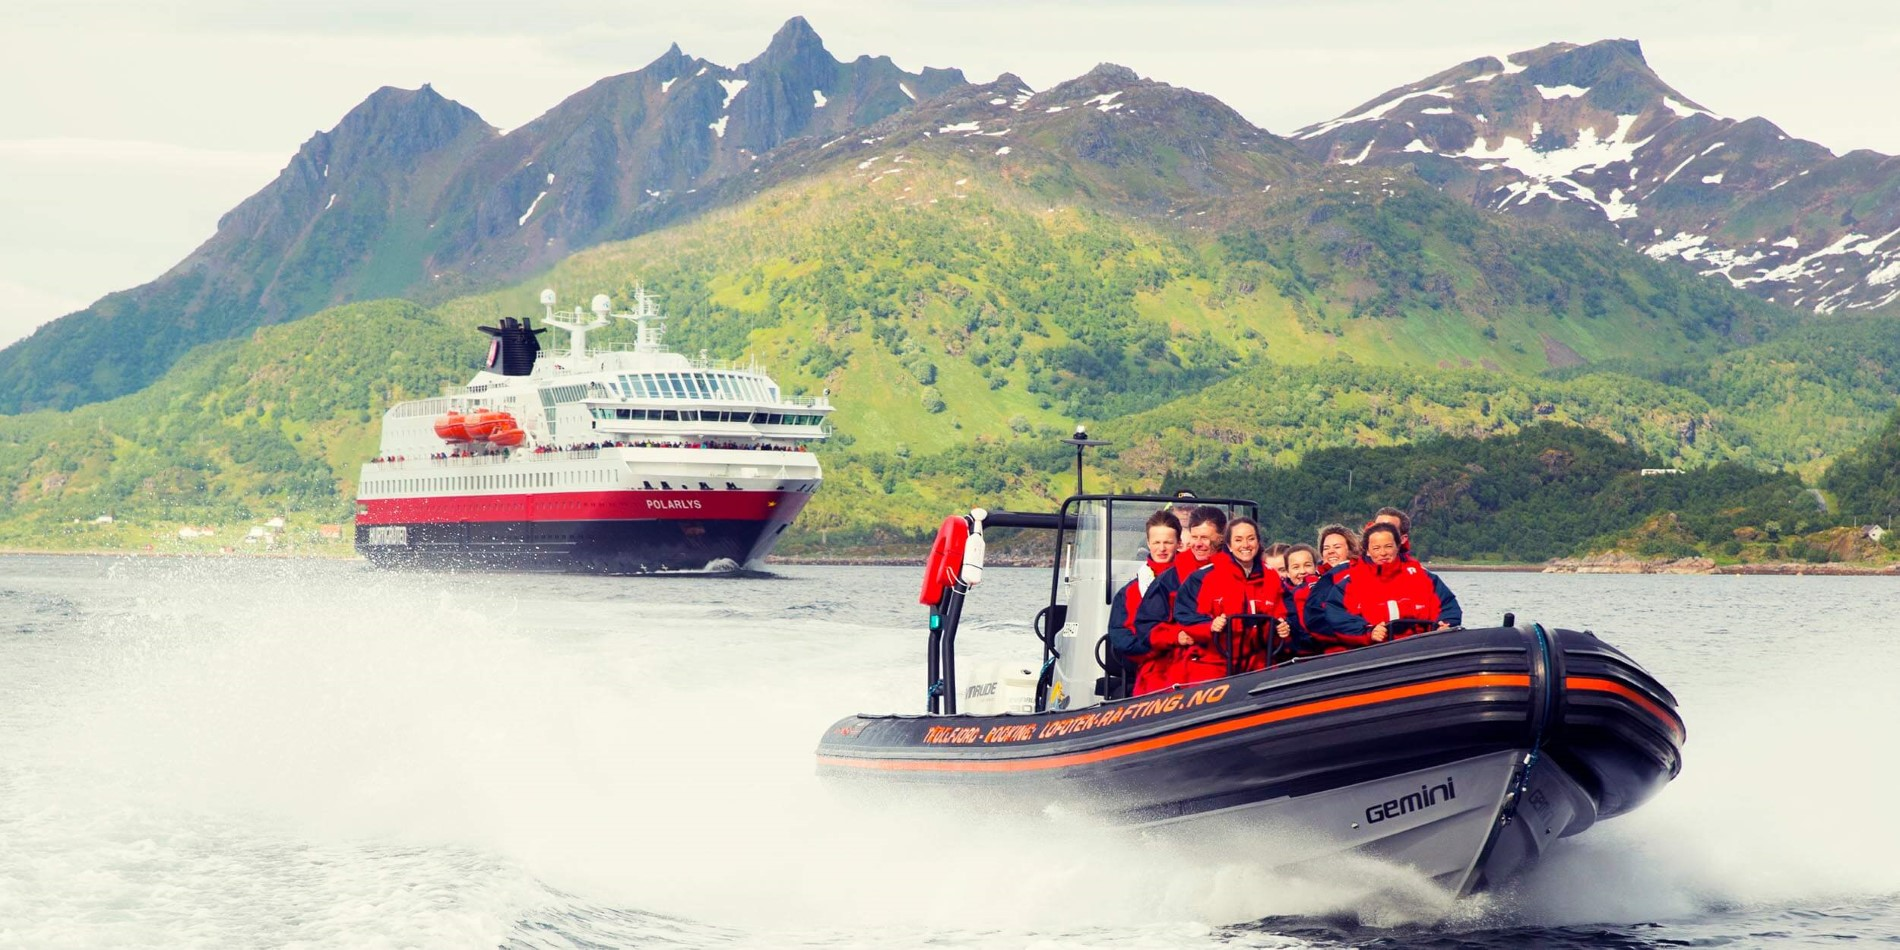 RIB tour with Hurtigruten behind